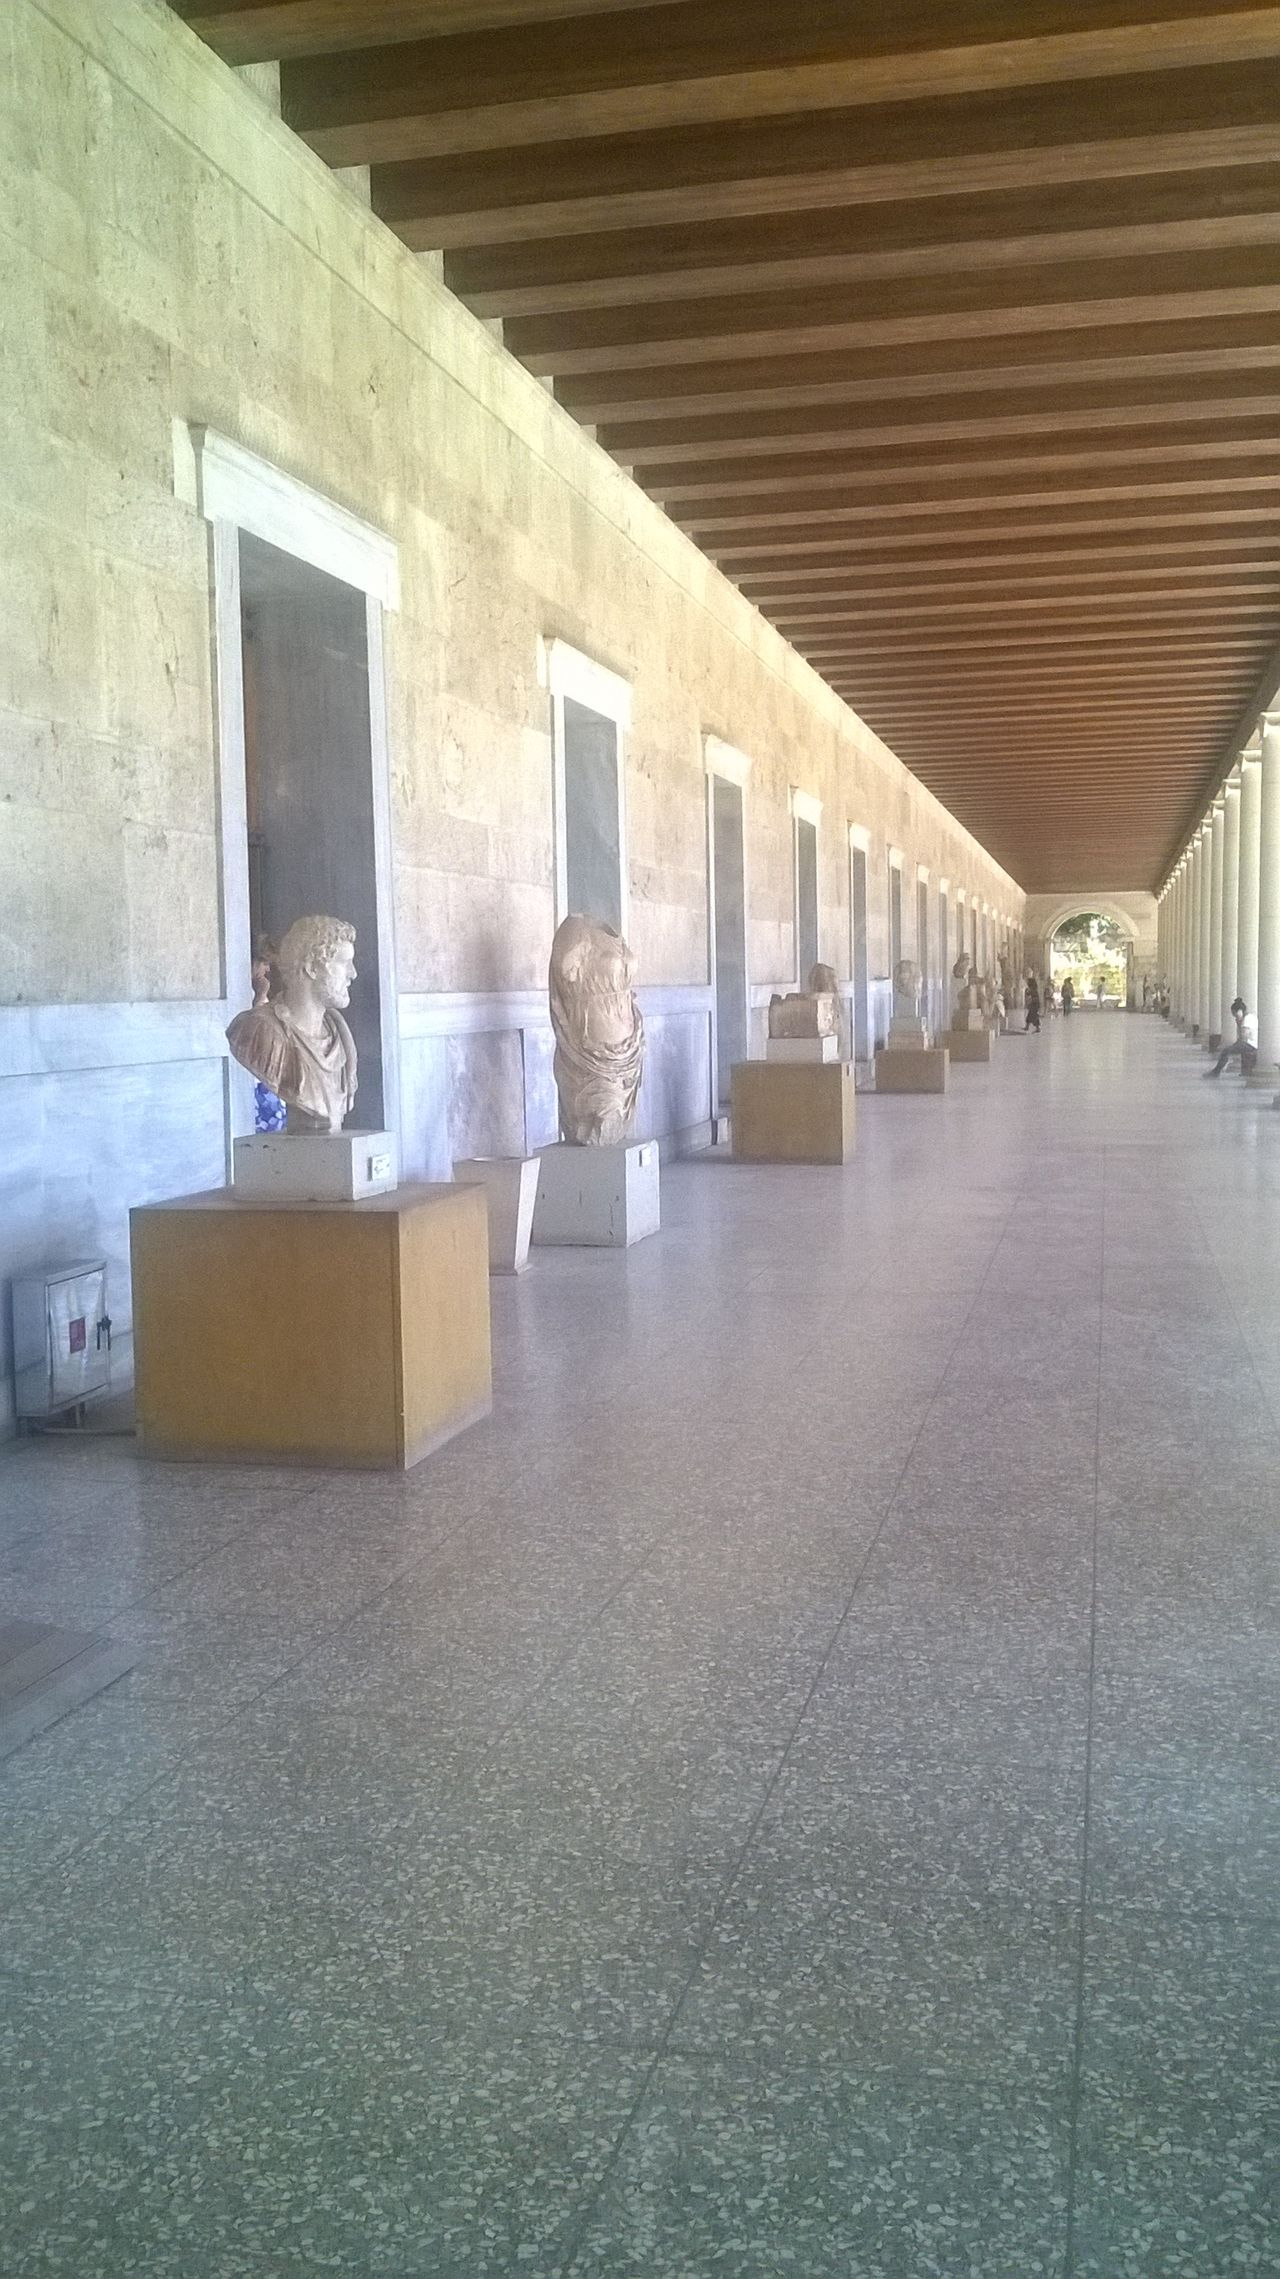 Ancient Civilization Architecture Cardboard Box Day Greeks Hellas Indoors  Museum People Vacation